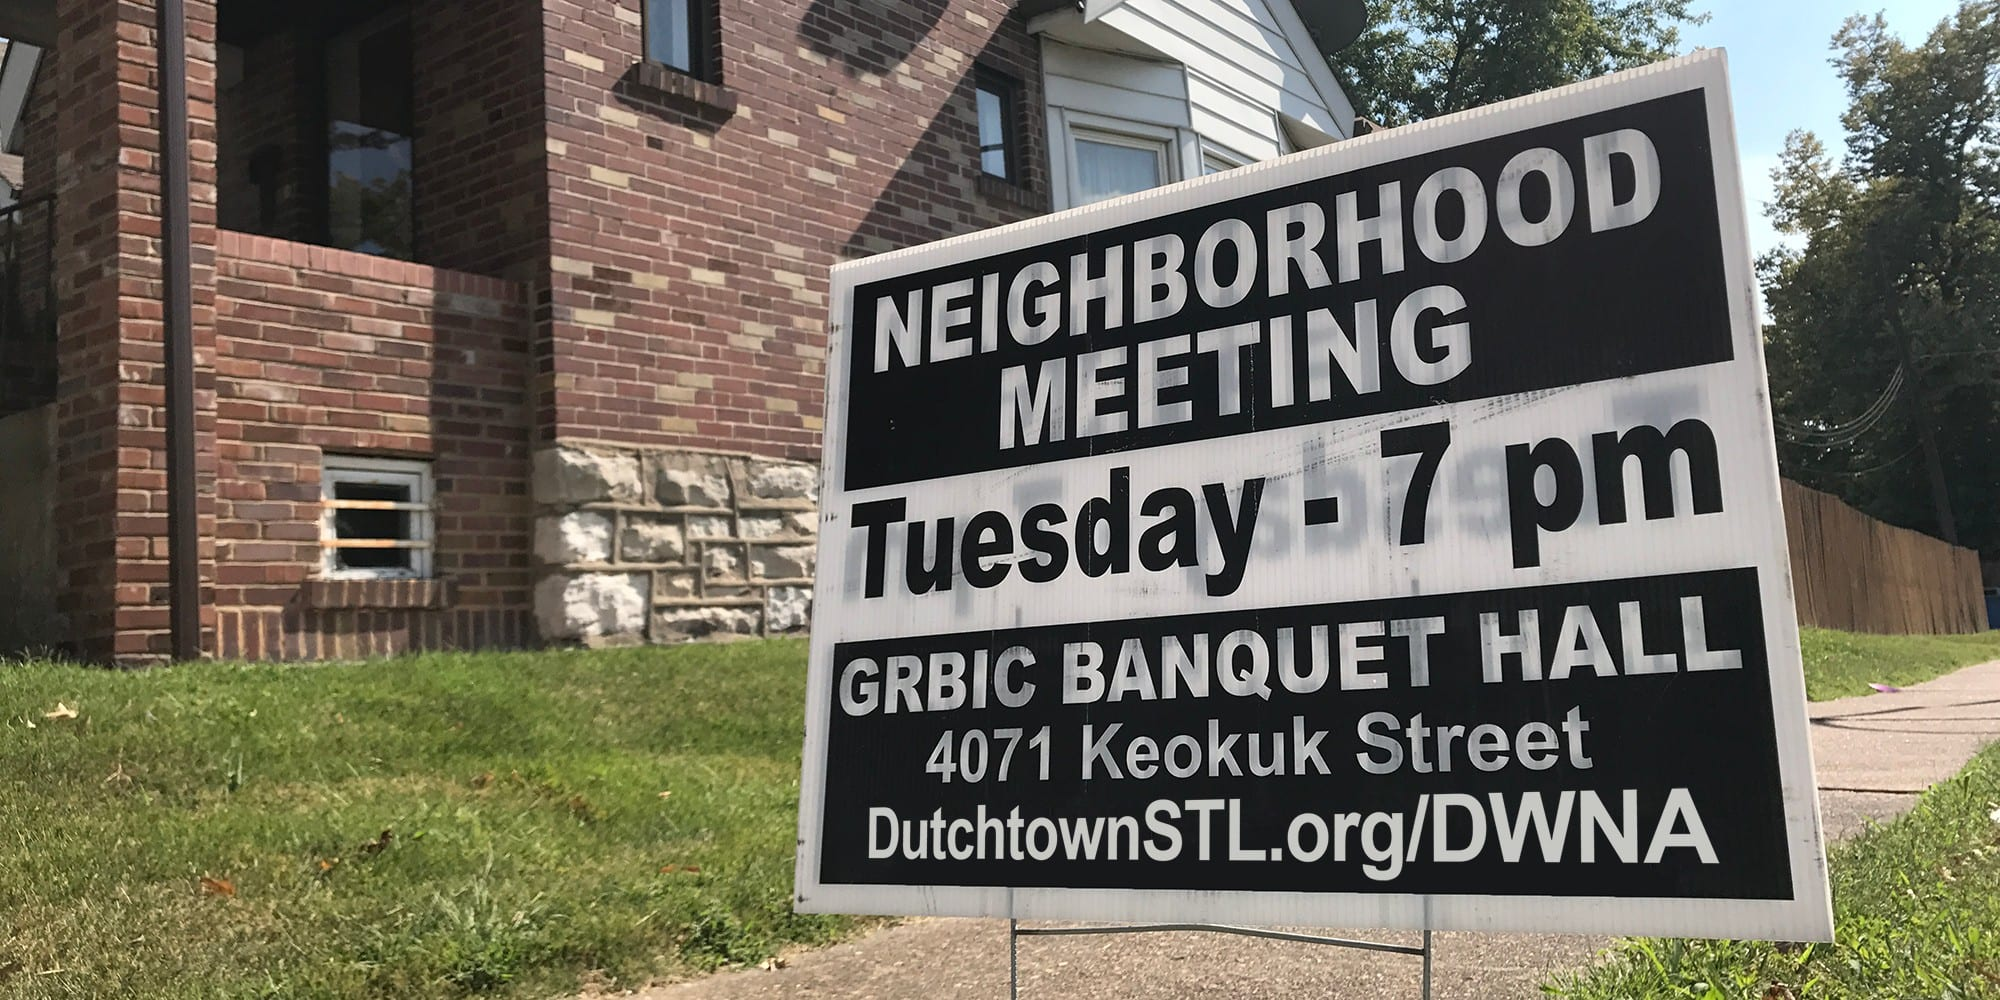 25th Ward Traffic Study Meeting